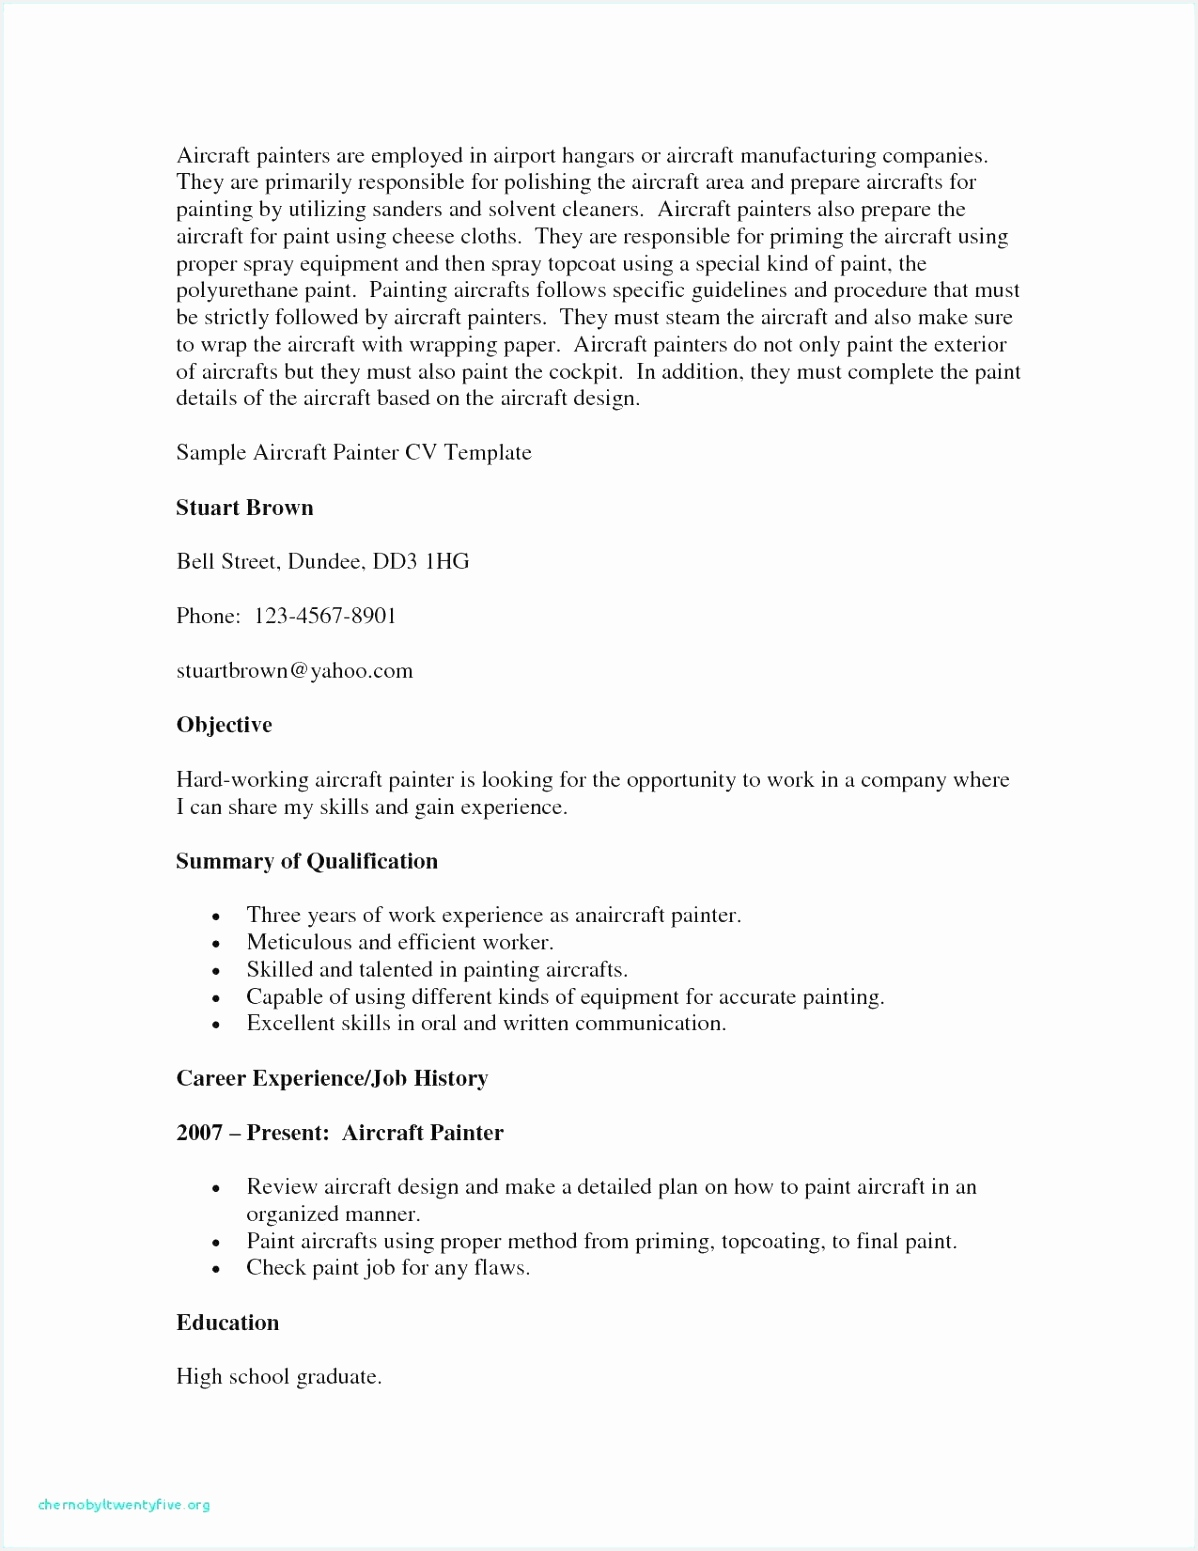 Best Professional Resume format Free Childcare Resume Template In Resume Examples 0d Good Looking Samples 155111980ornc